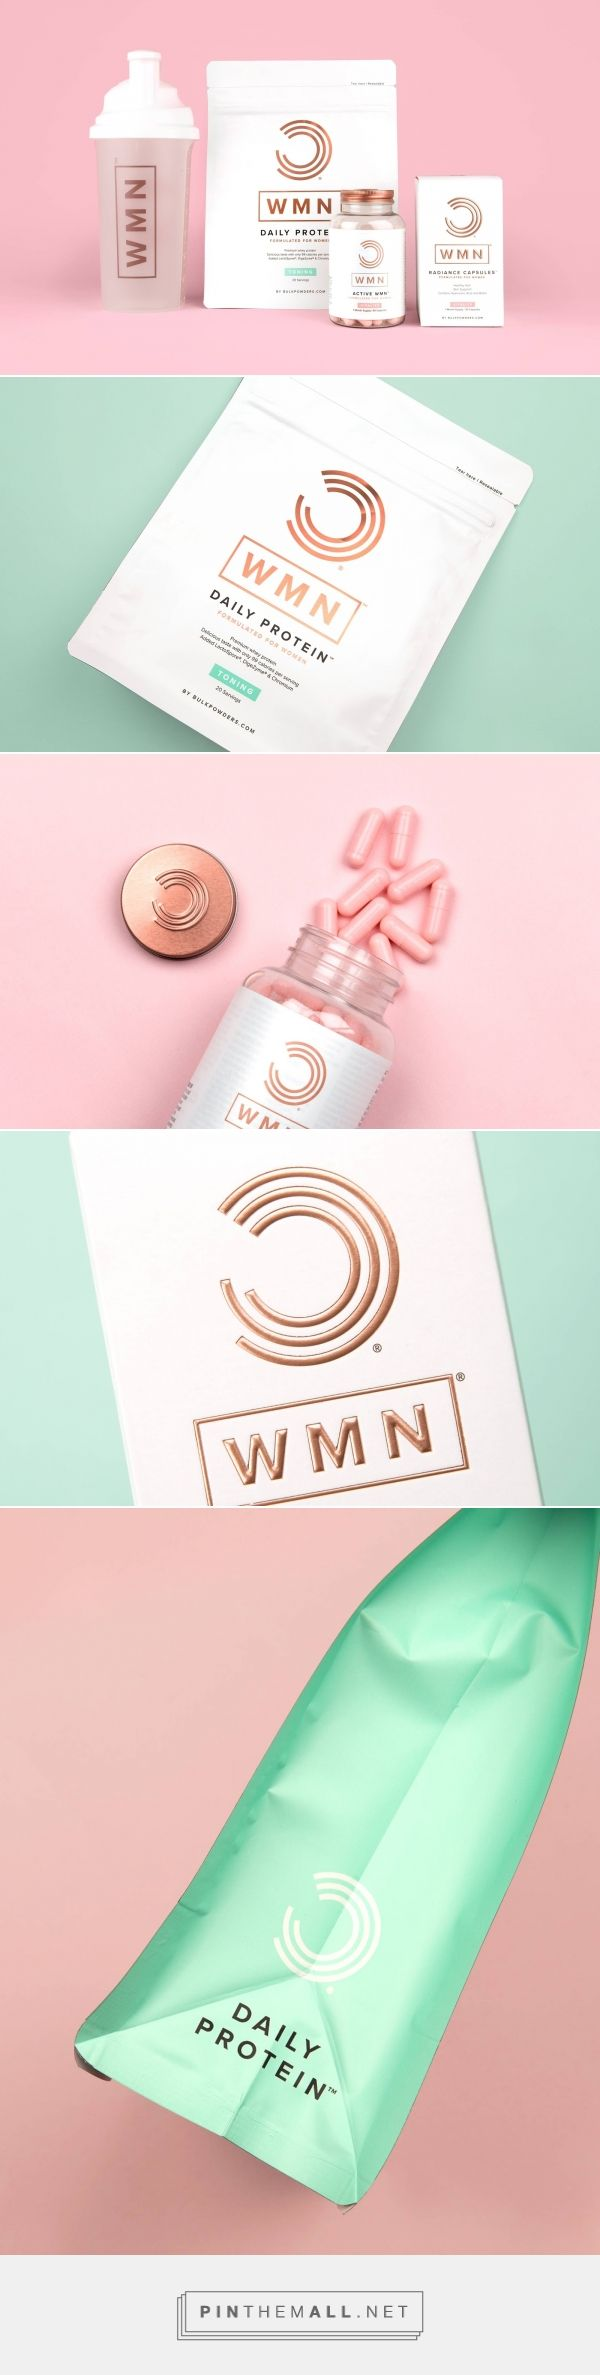 WMN - Packaging of the World - Creative Package Design Gallery - http://www.packagingoftheworld.com/2018/02/wmn.html